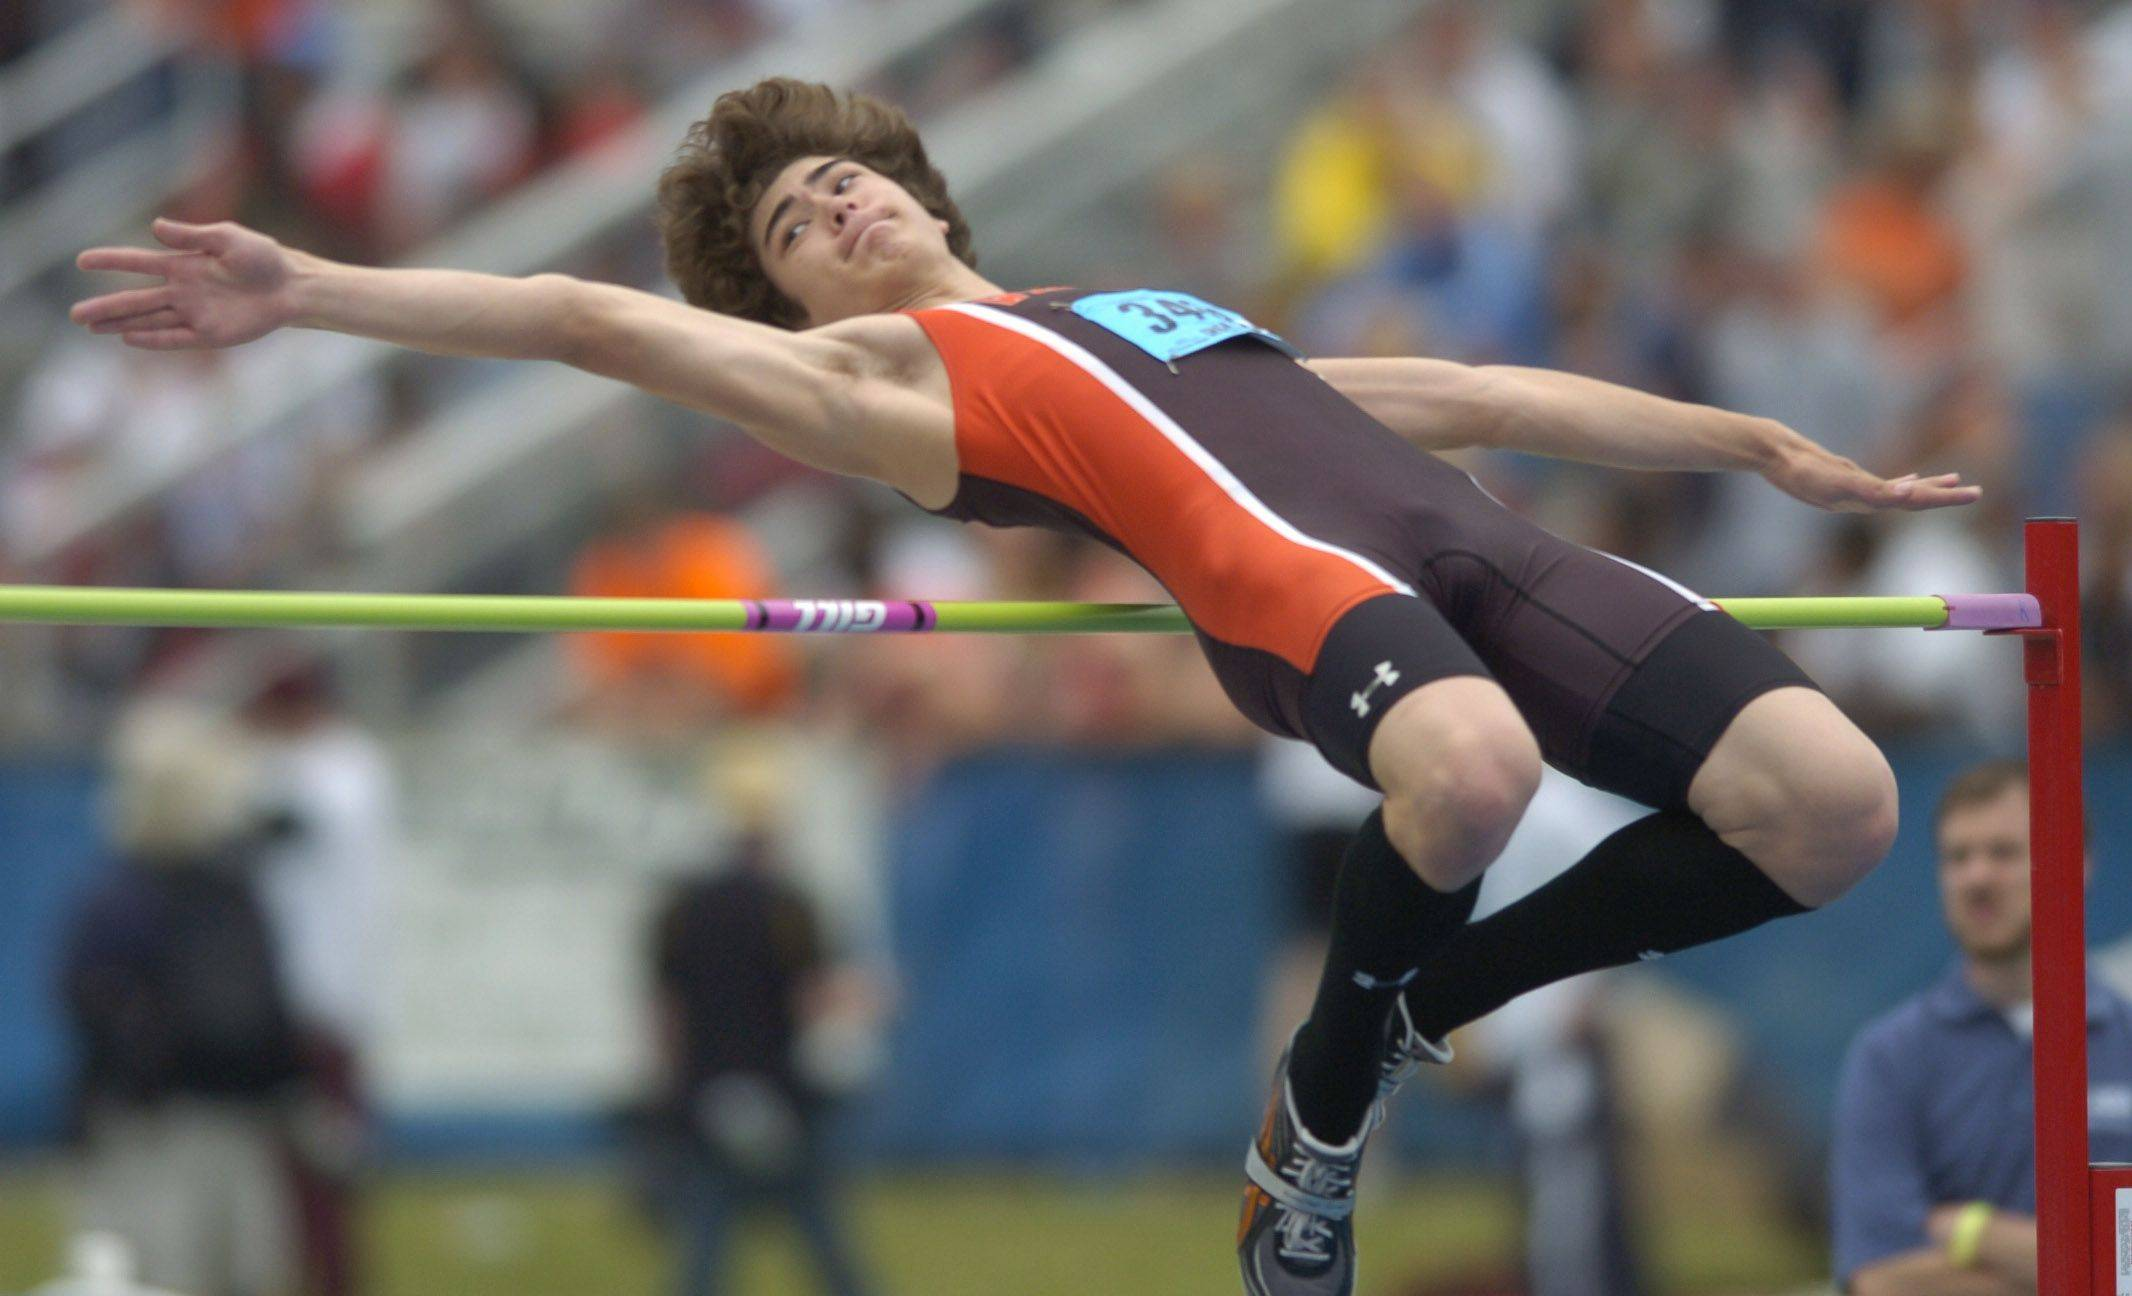 Libertyville's Jeremy Birck clears the bar in the class 3A high jump during the boys state track finals in Charleston Saturday.